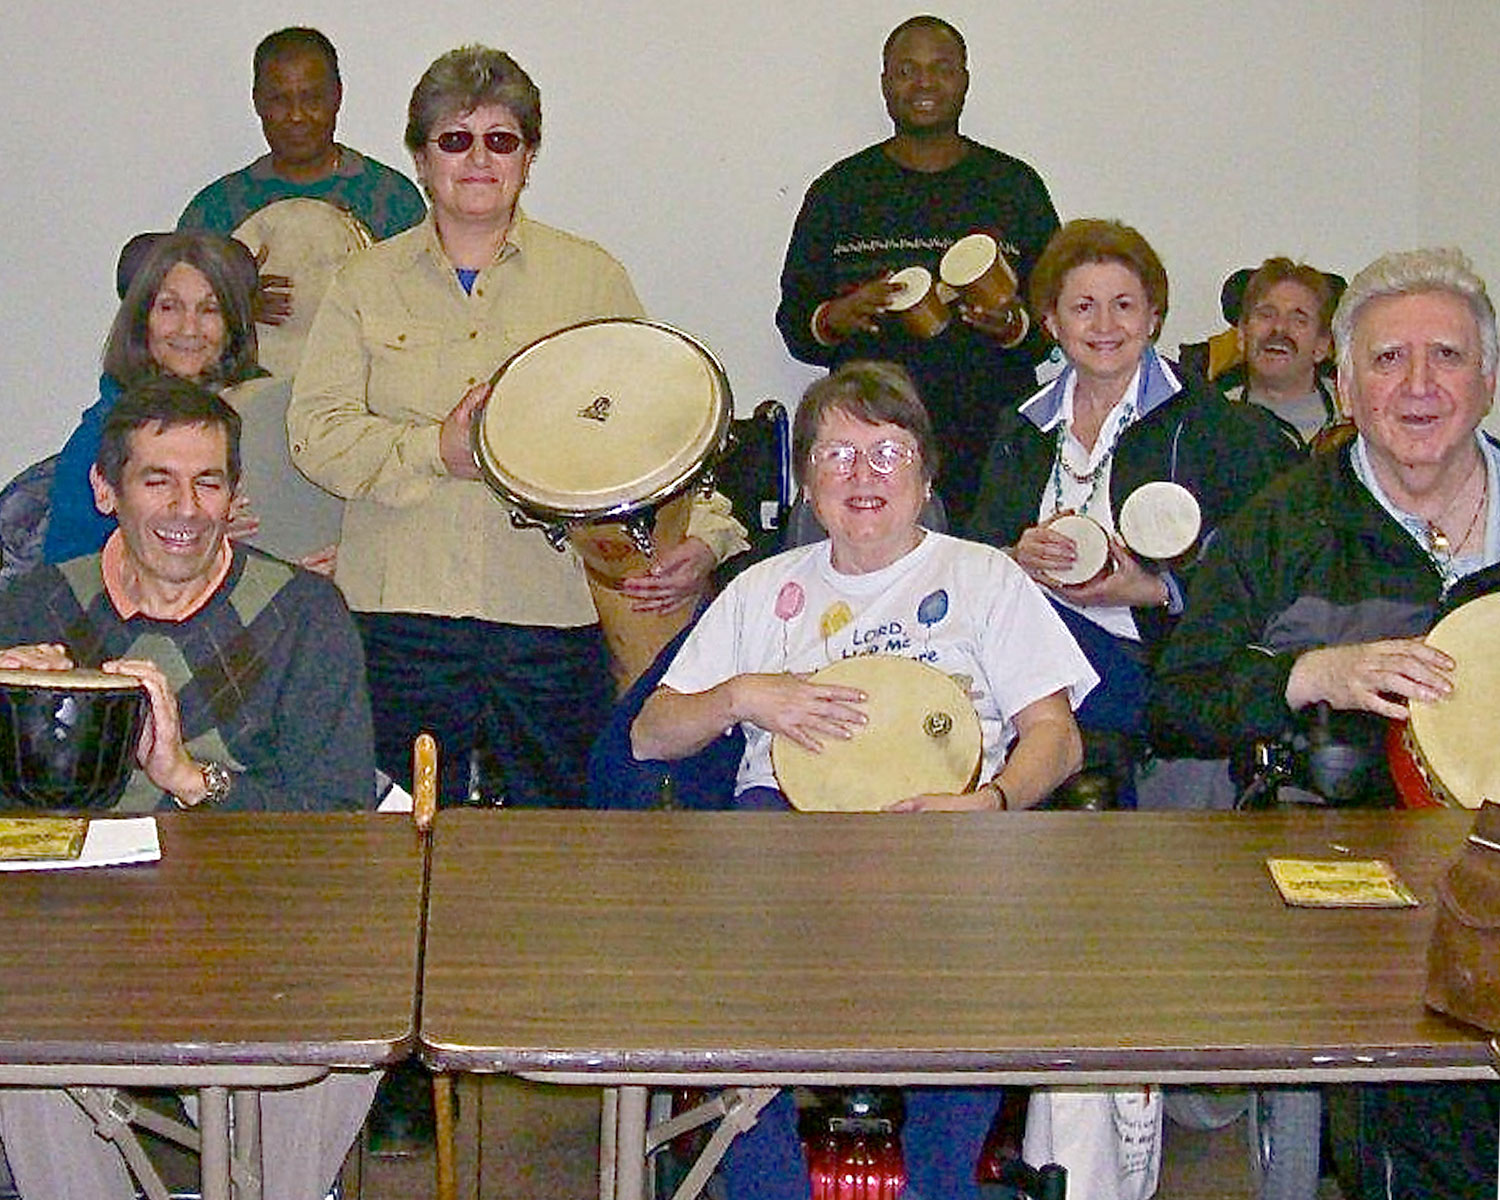 Staten Island MS Drumming Circle photo